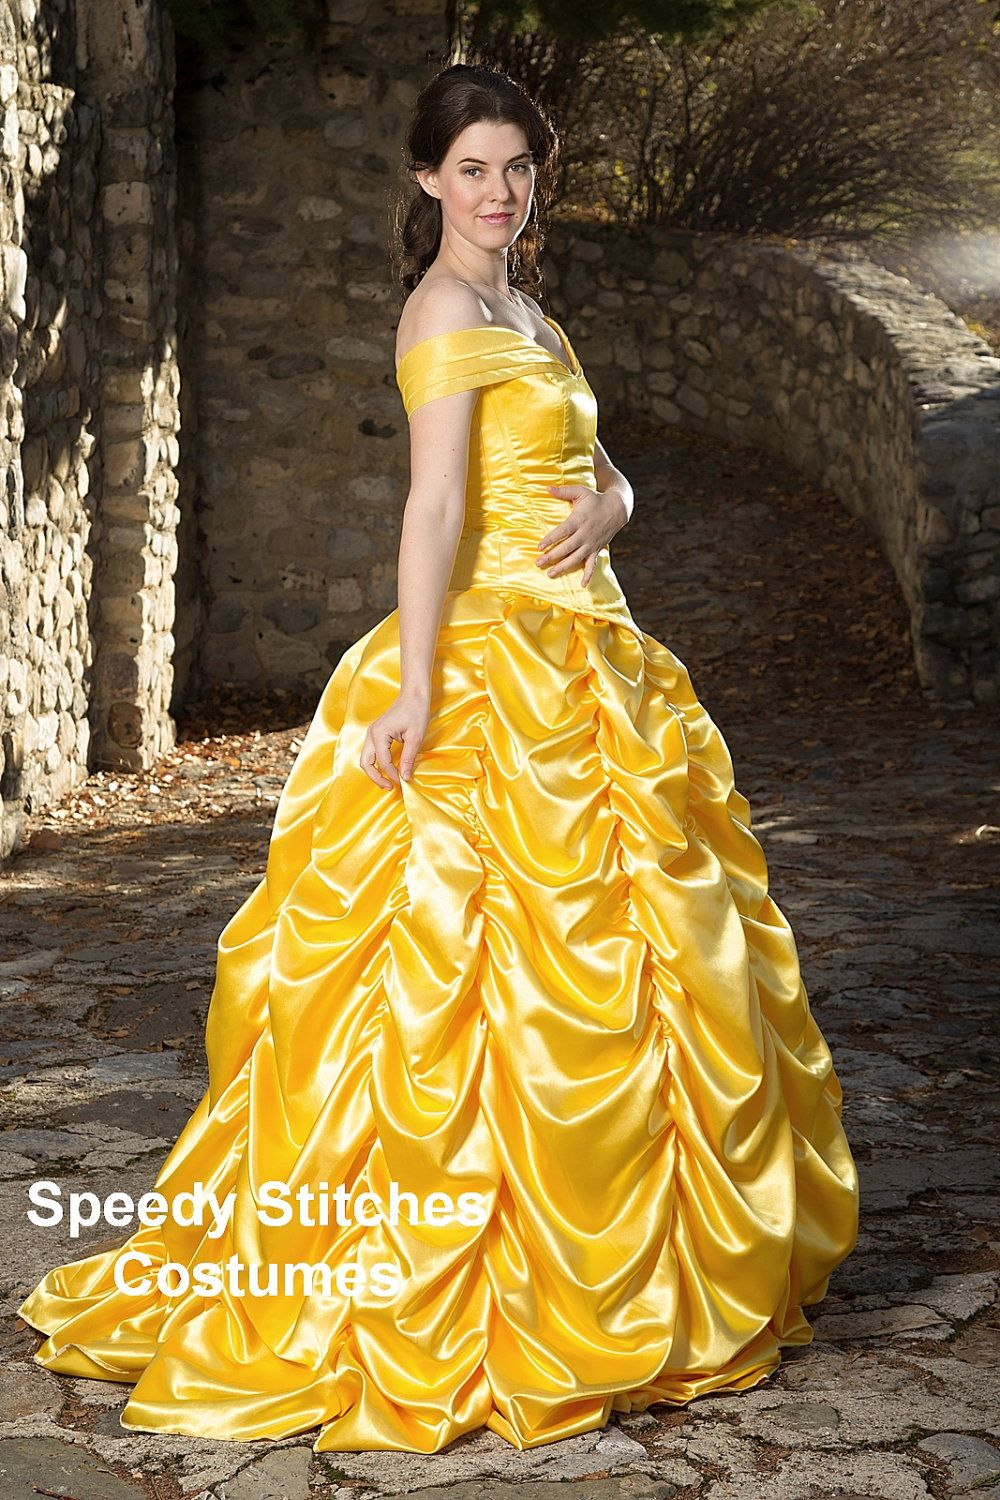 Adult Belle Princess Costume made in Gold washable satin  sc 1 st  Pinterest & Adult Belle Princess Costume made in Gold washable satin | The o ...